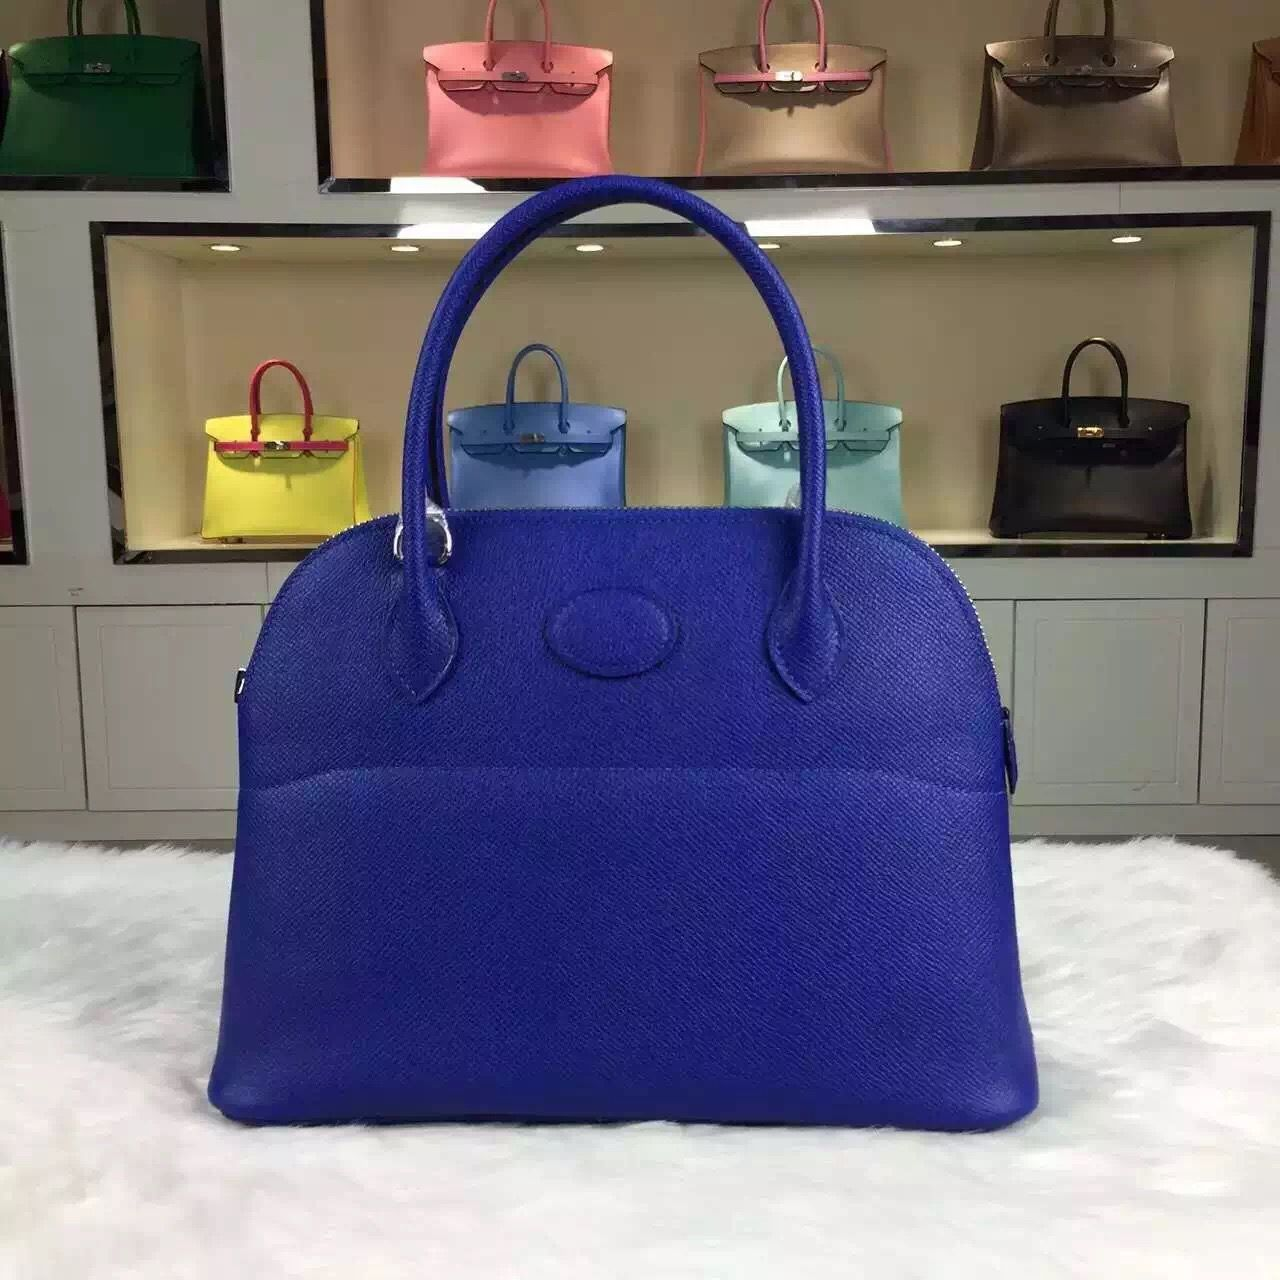 3e4900f5ec24 Brand  Hermes  Style  Bolide Bag  Material  epsom calfskin leather Color 7T  Blue Electric  Size 27 20 10CM  Hardware  silver  Accessories  dust bag.